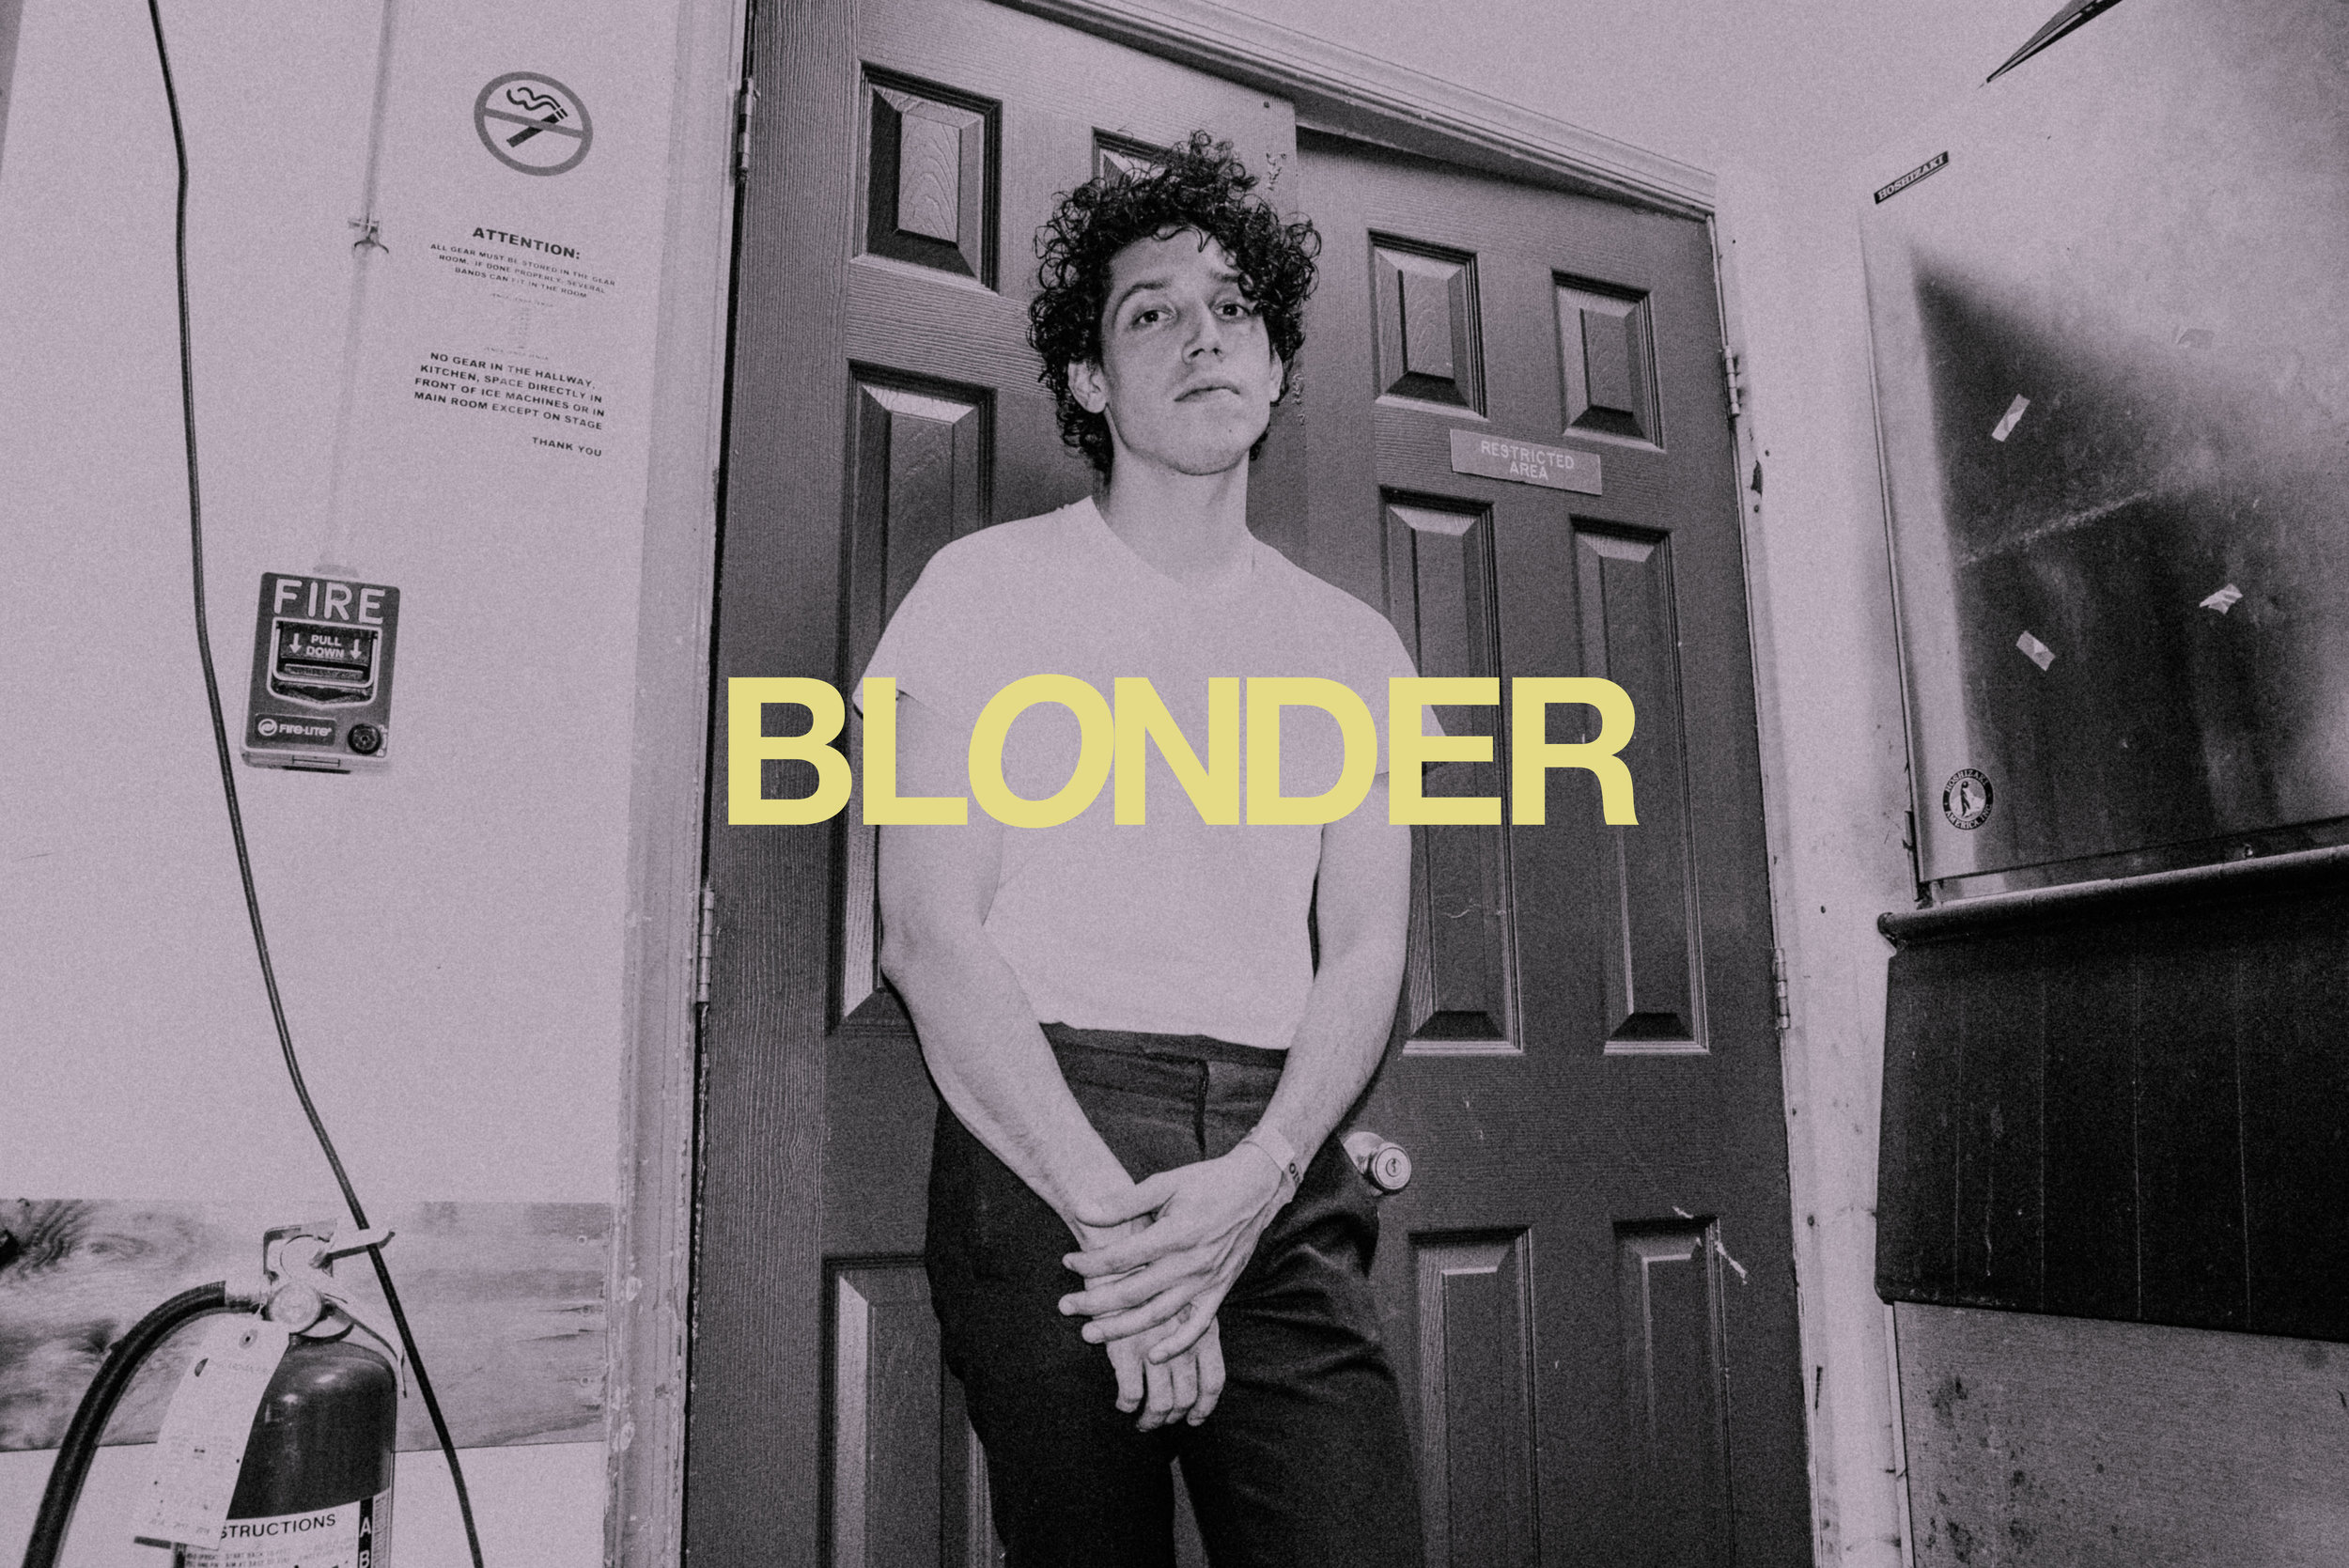 On a Saturday evening in DC - I stood backstage in a storage room at Rock & Roll Hotel with Constantine Anastasakis, the mastermind behind Blonderto discuss his introduction to David Bowie, the origin of Blonder, the importance of aesthetic, and the Blonder World he has created with his debut EP, $5.